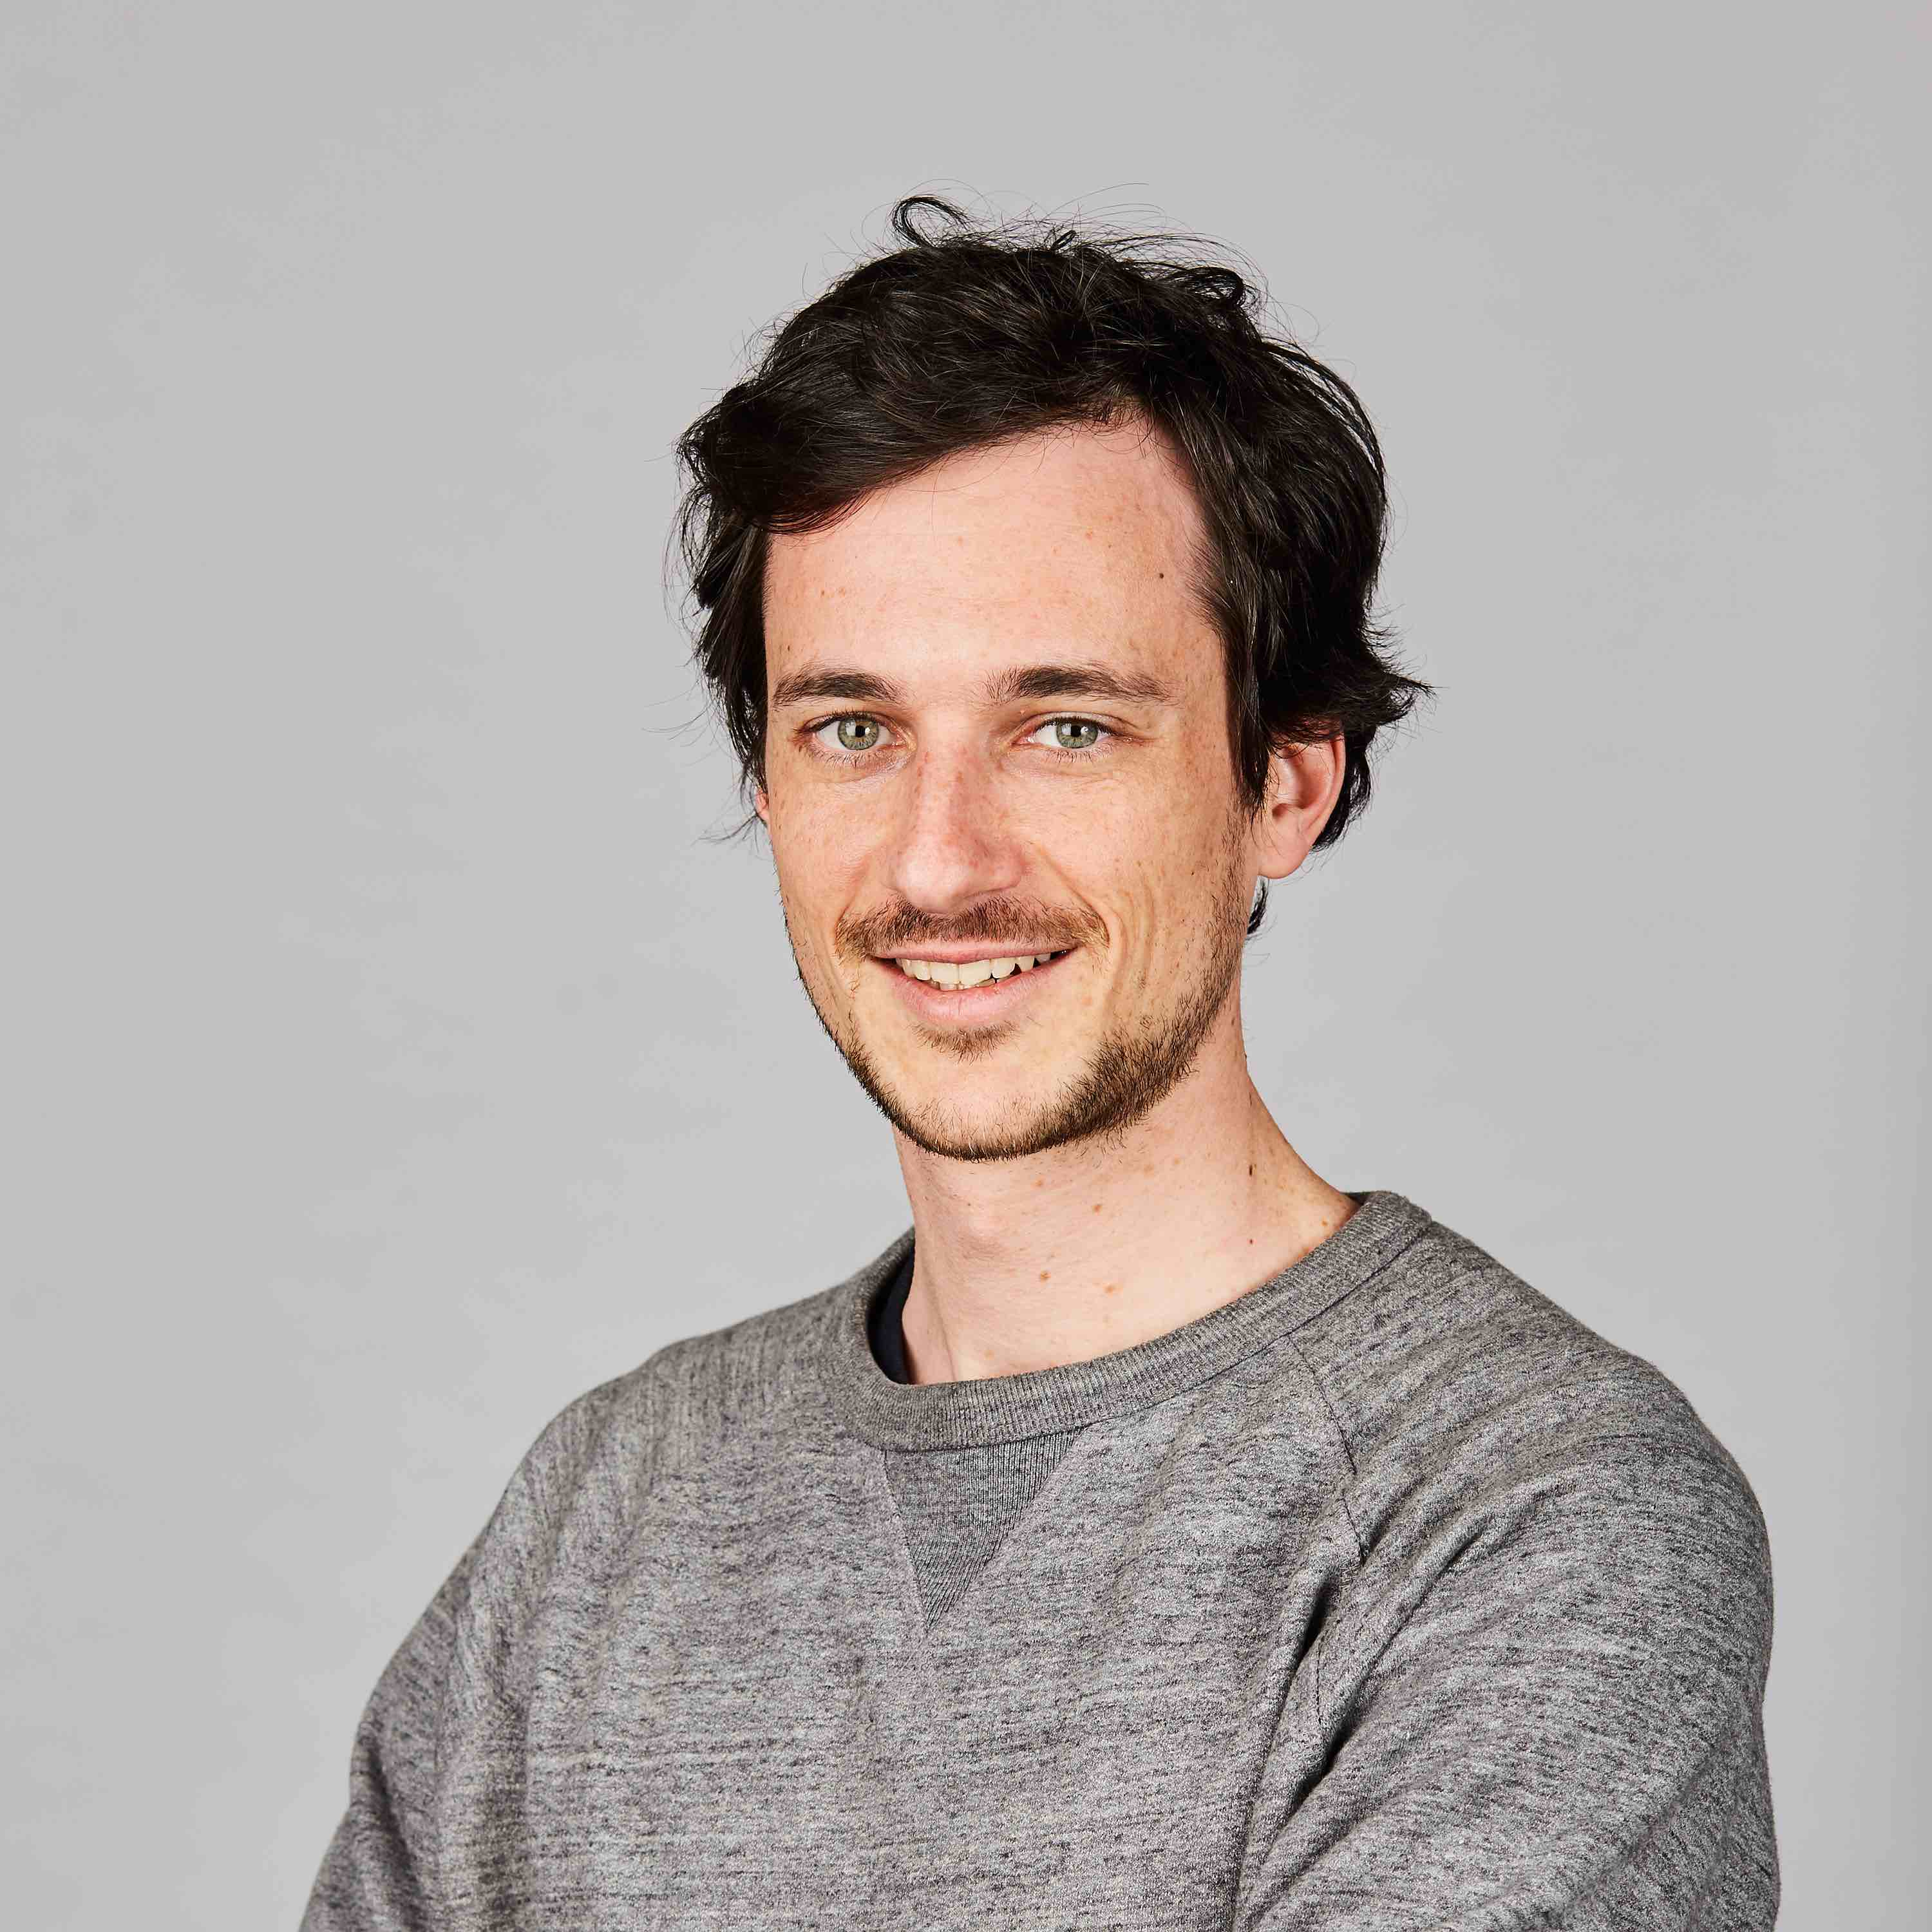 picture of thomas geury - senior researcher at mobi